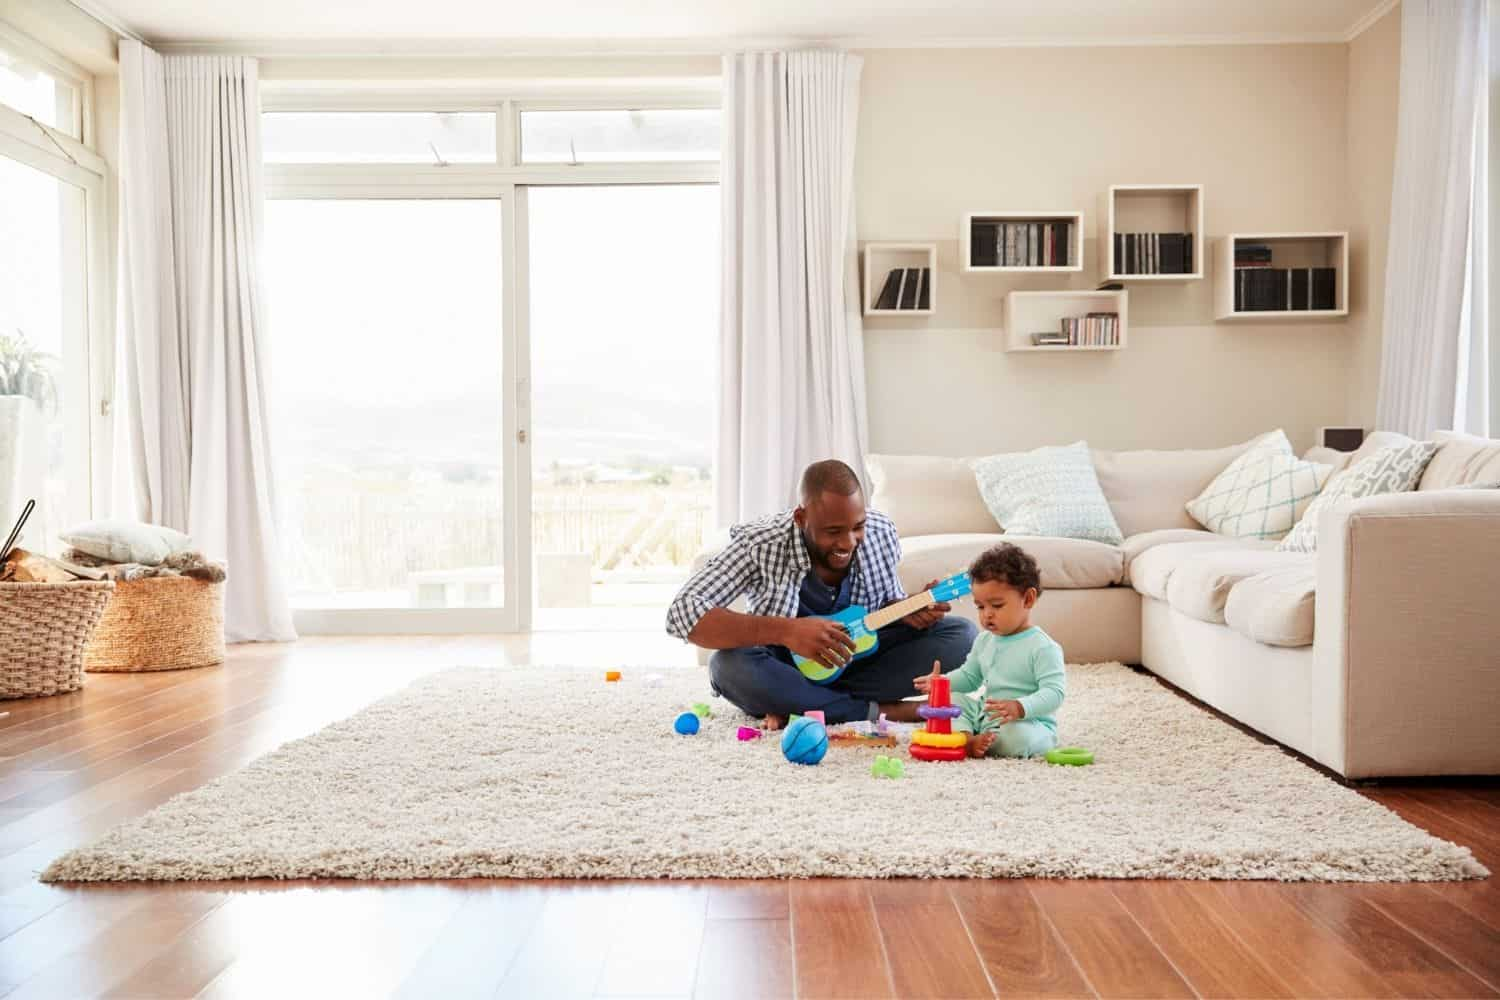 Insulate with rugs